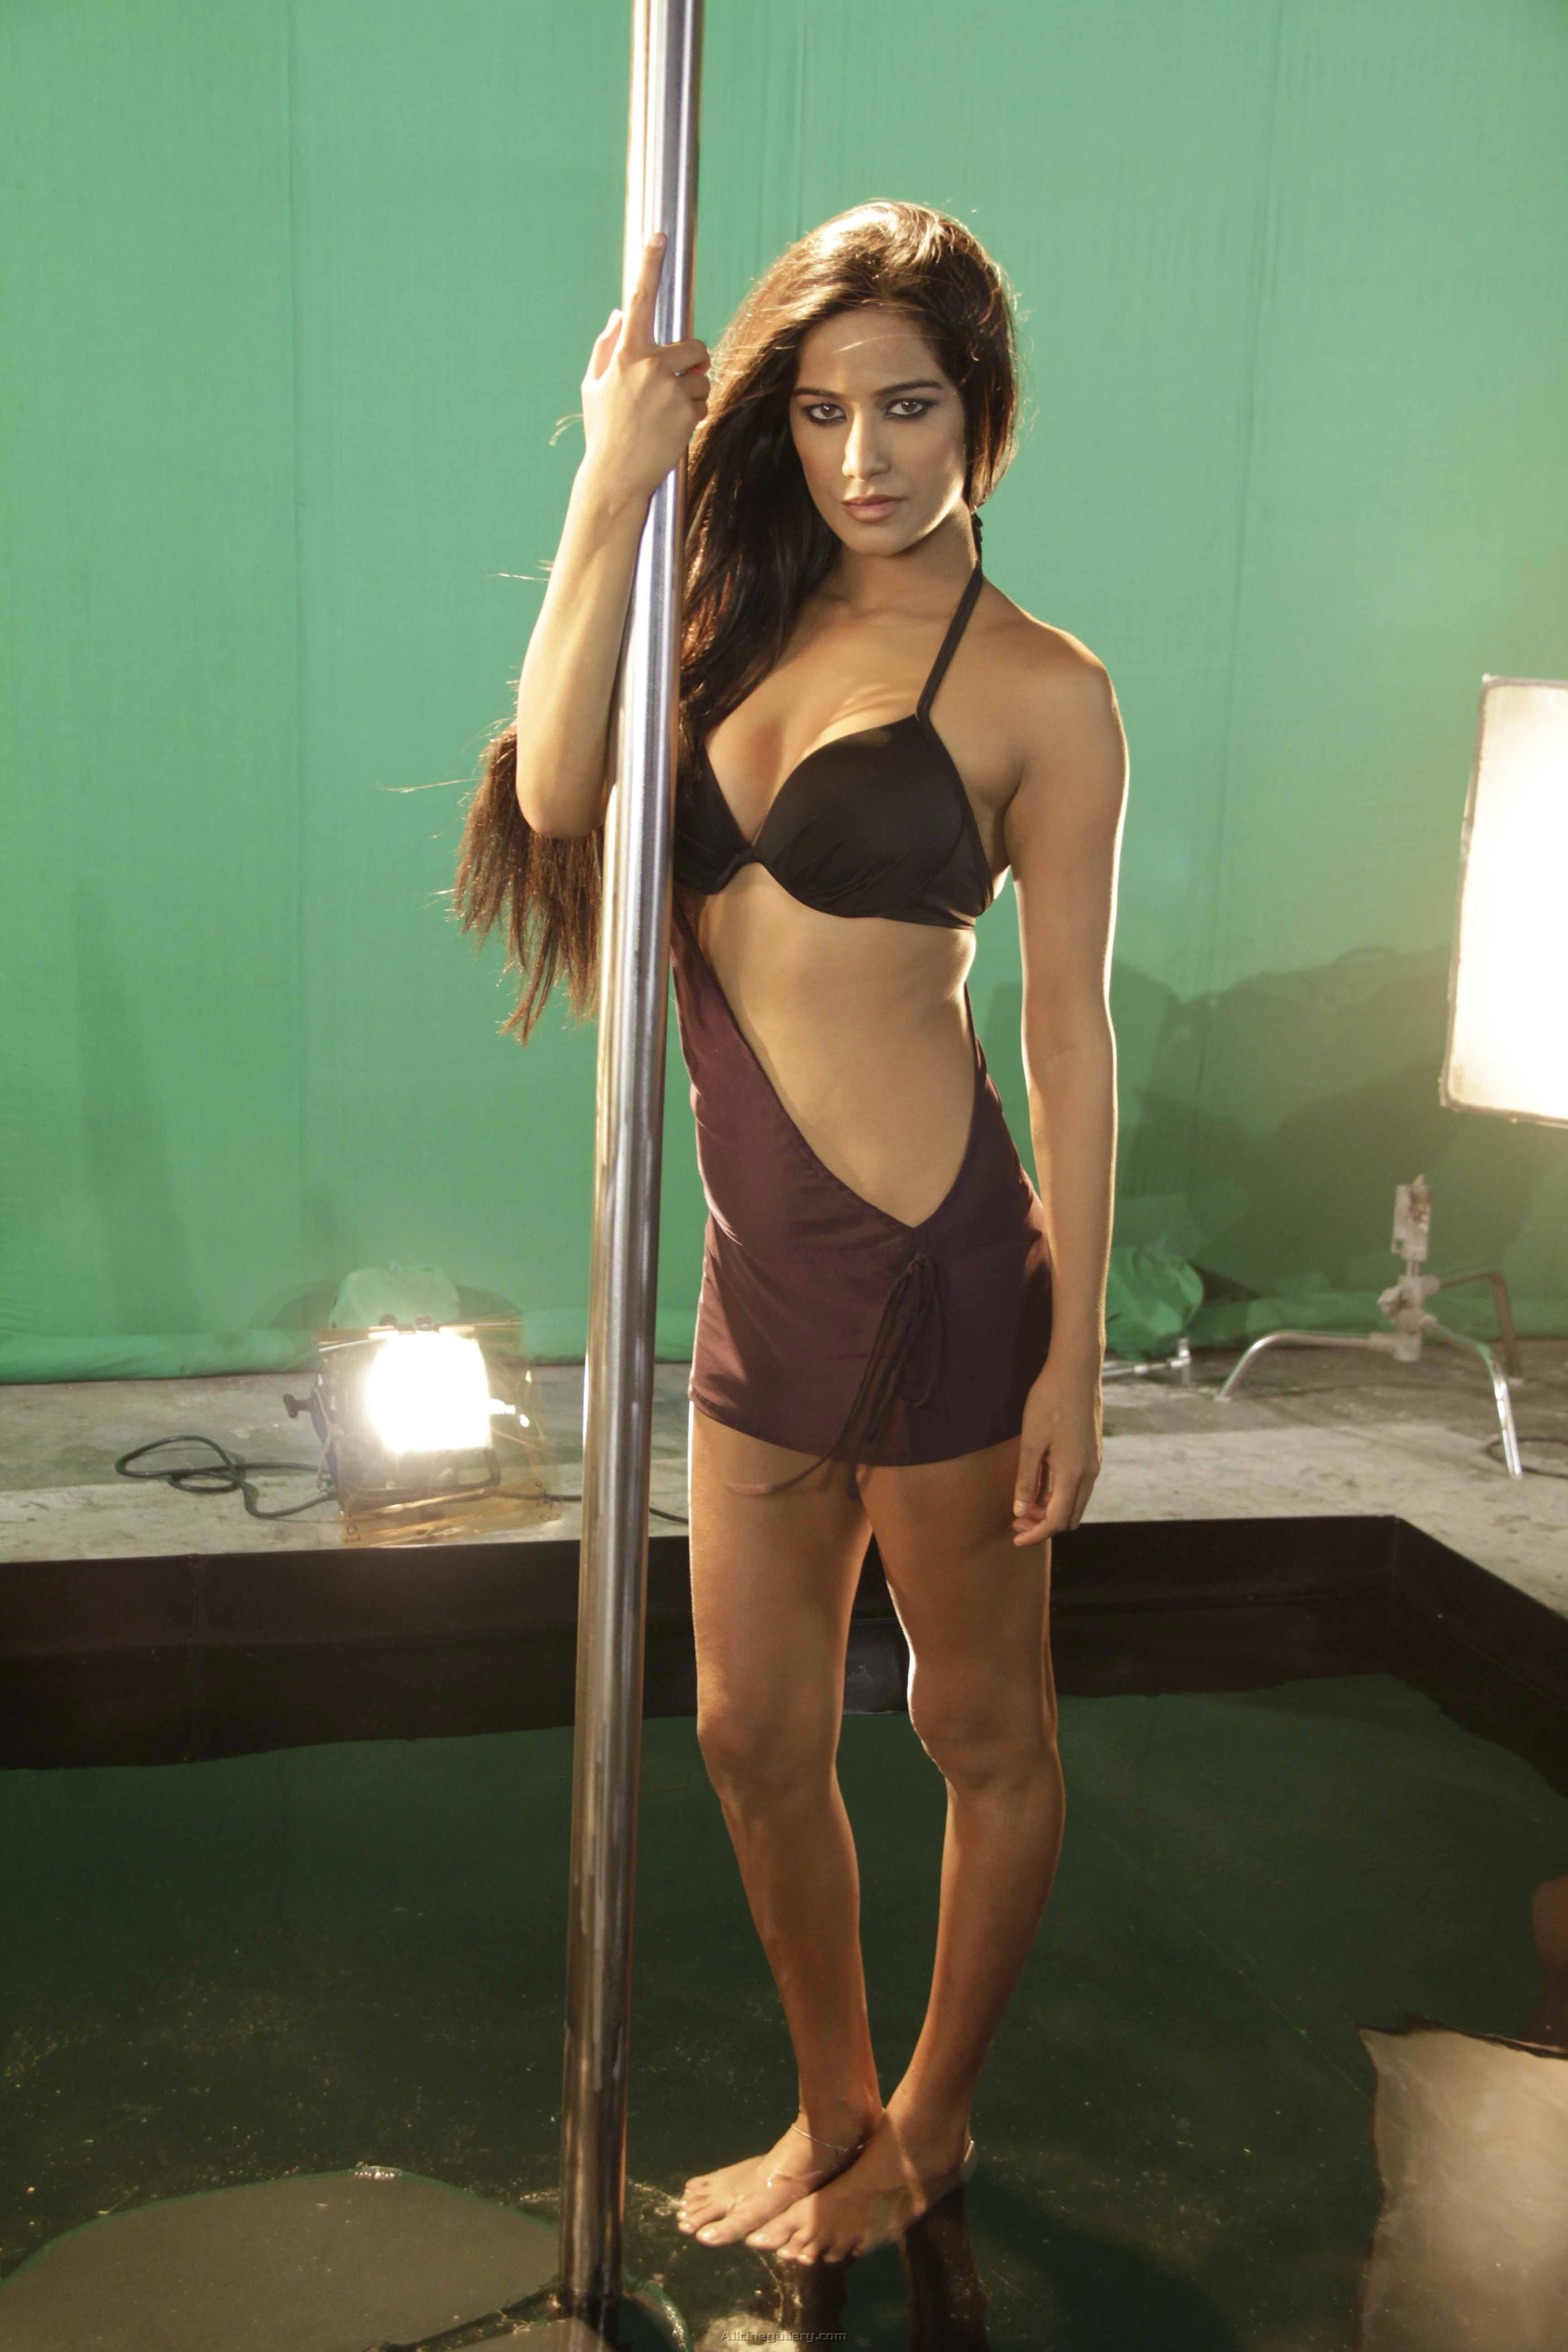 Celebrity Poonam Pandey naked (76 foto and video), Tits, Paparazzi, Instagram, underwear 2019